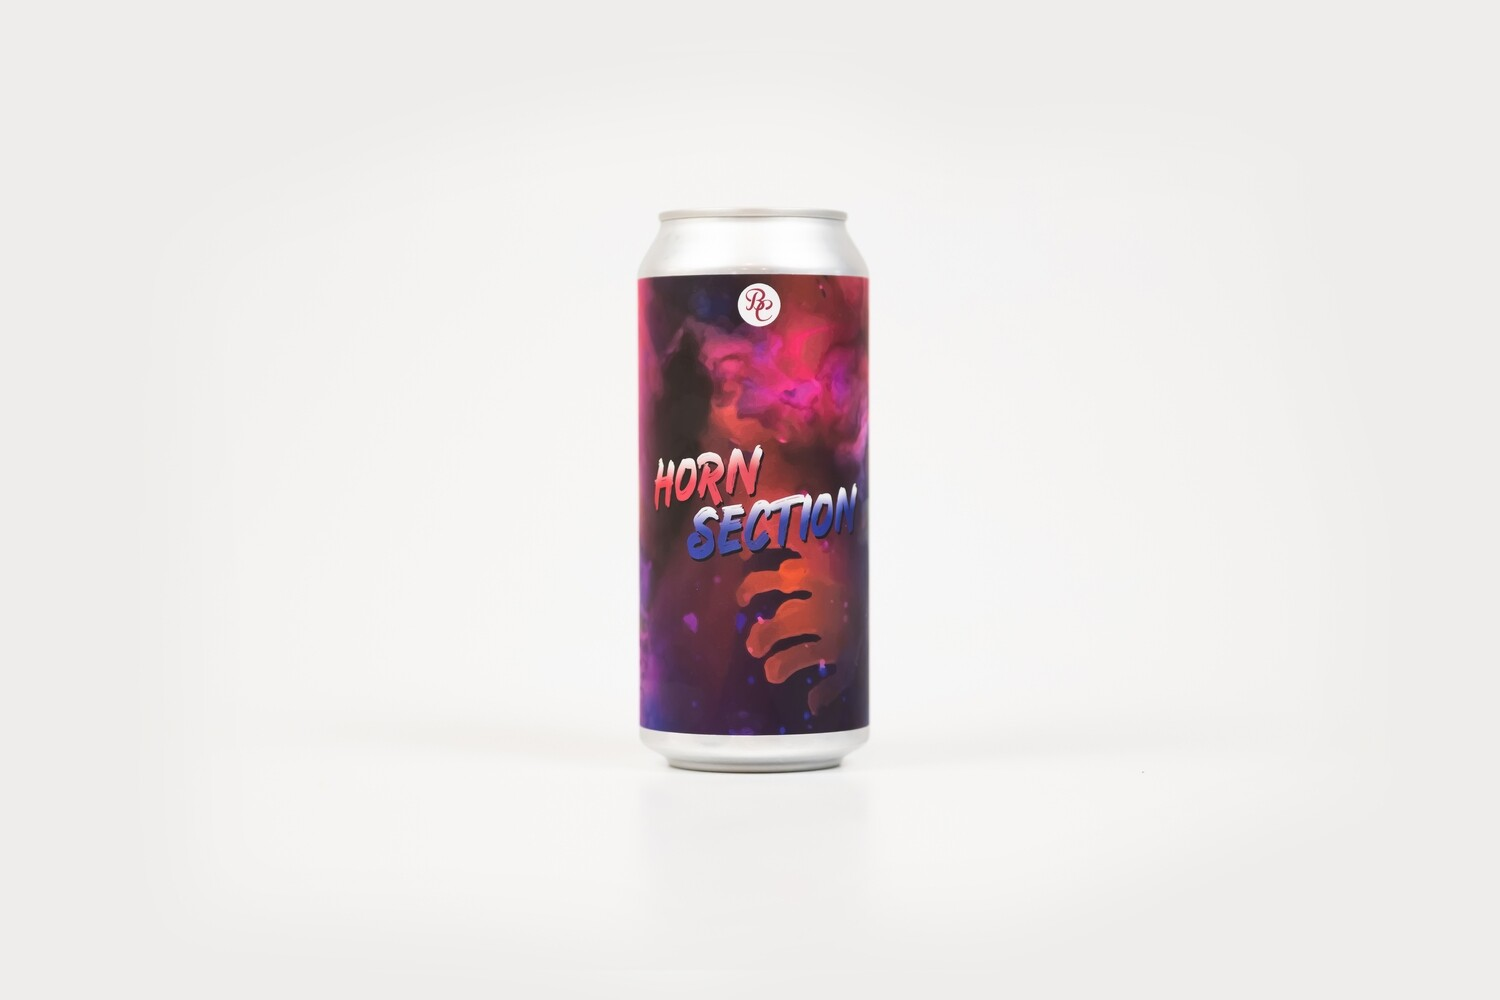 Horn Section 16oz Cans - 4pk